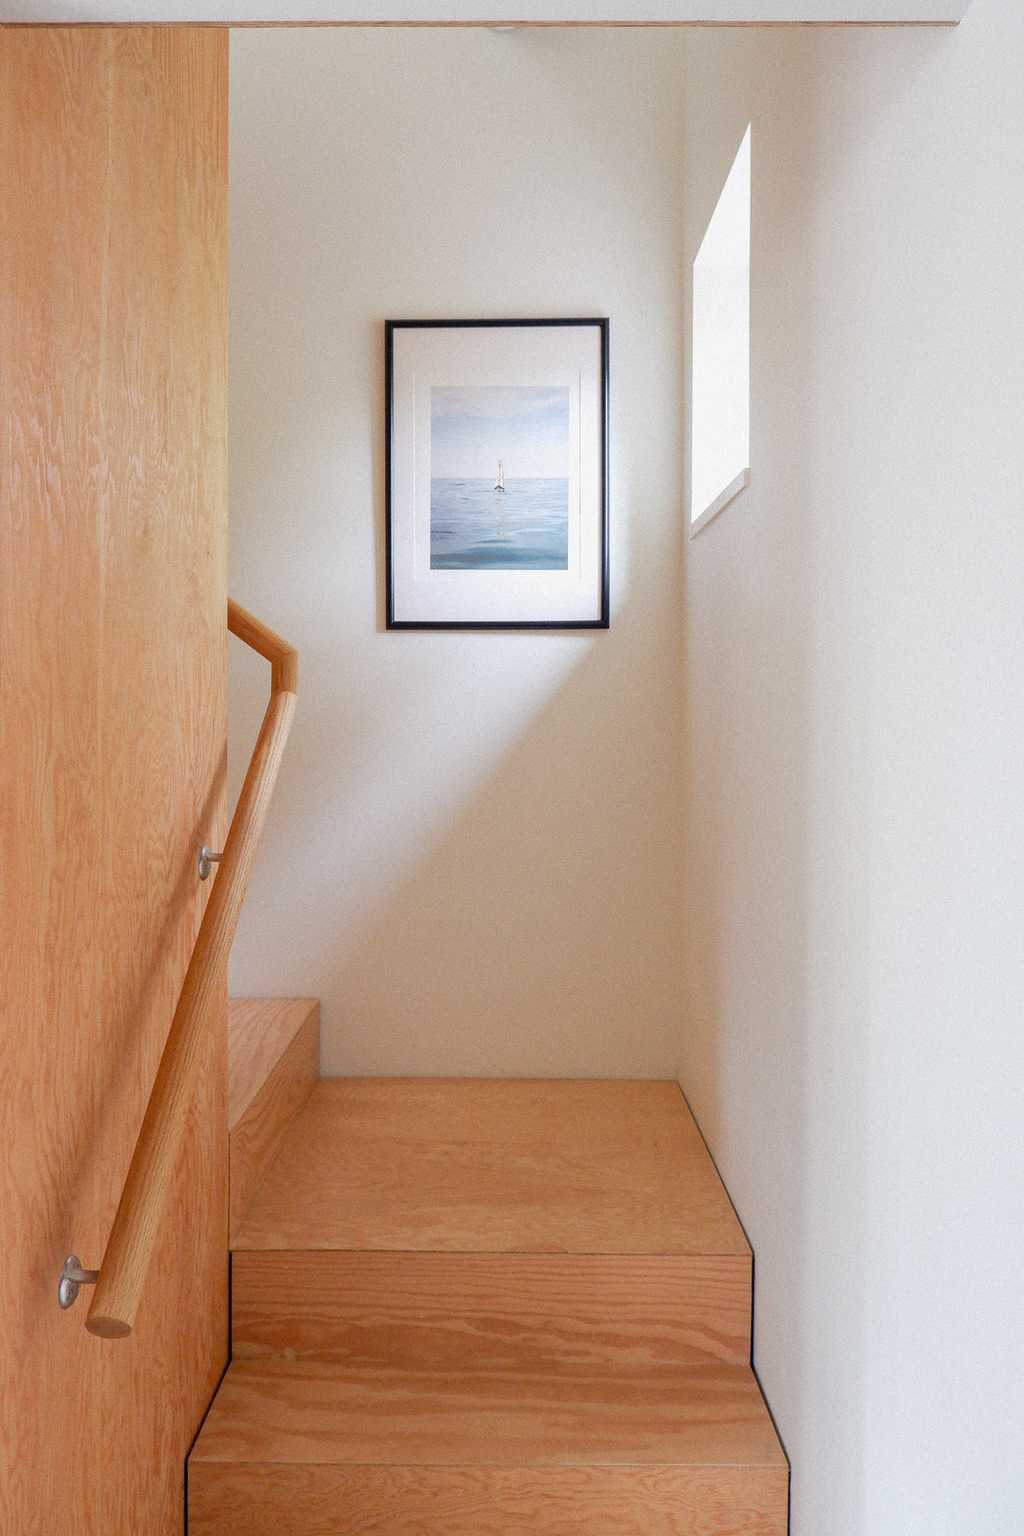 Stairs in Airbnb rental